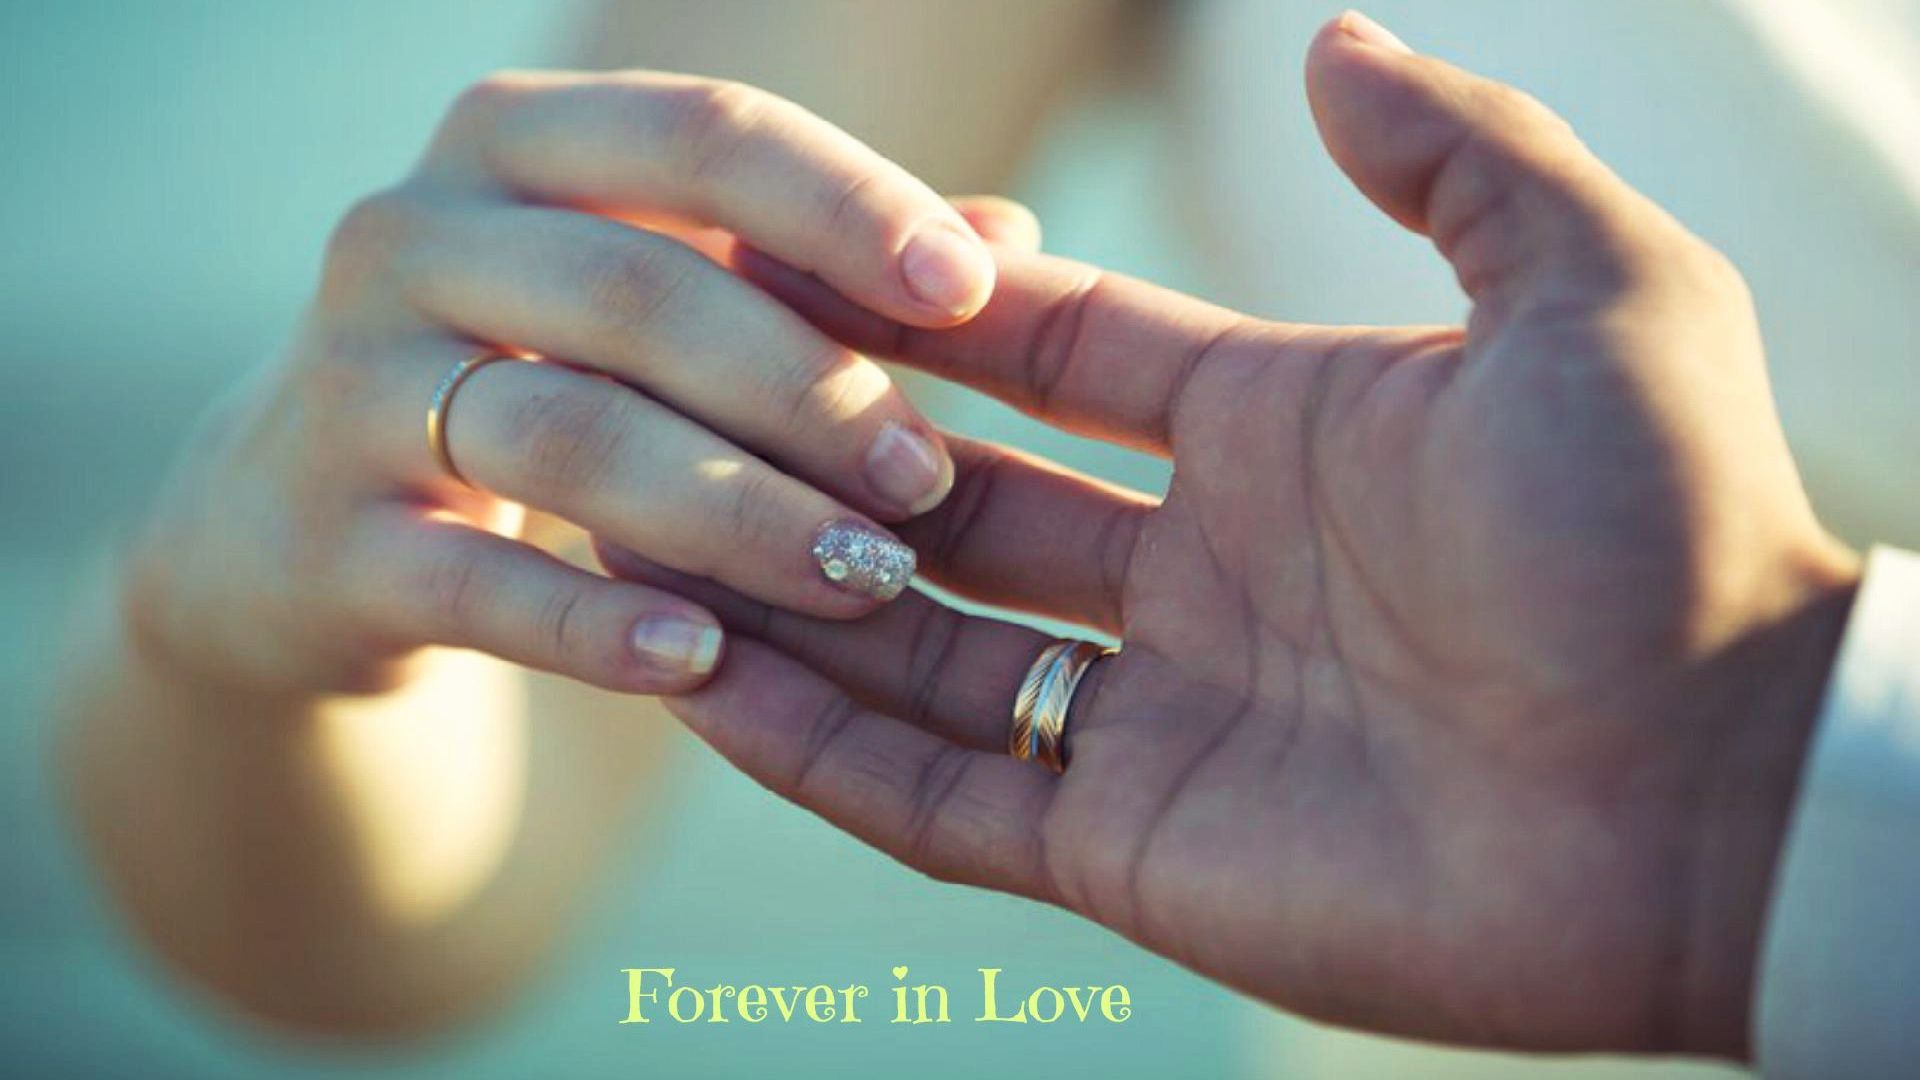 I Love You Forever Hd Wallpapers Wallpapers Catalog Love